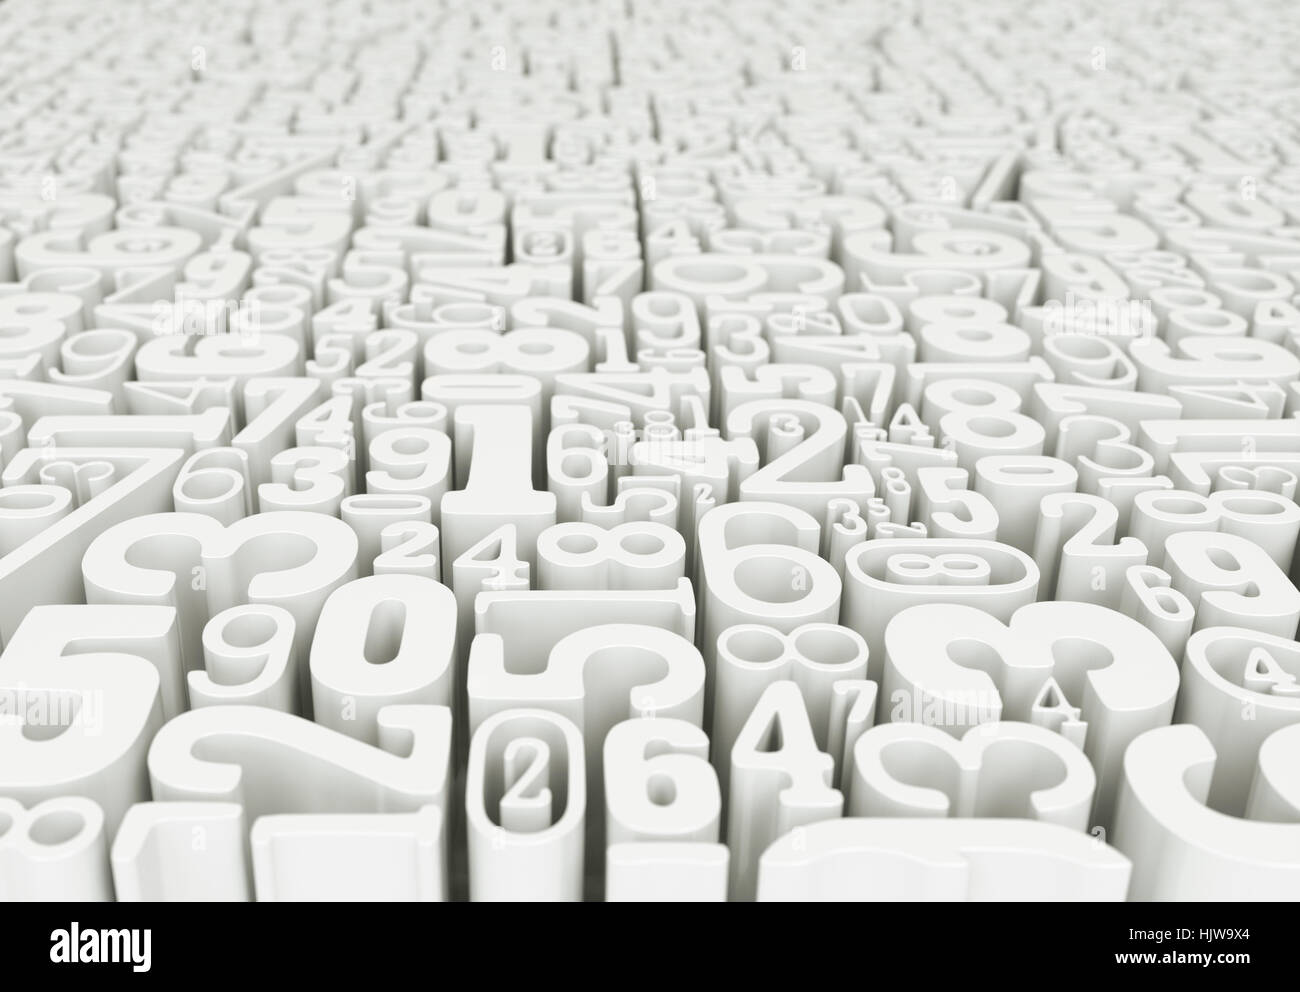 World of numbers - 3D Rendering - Stock Image